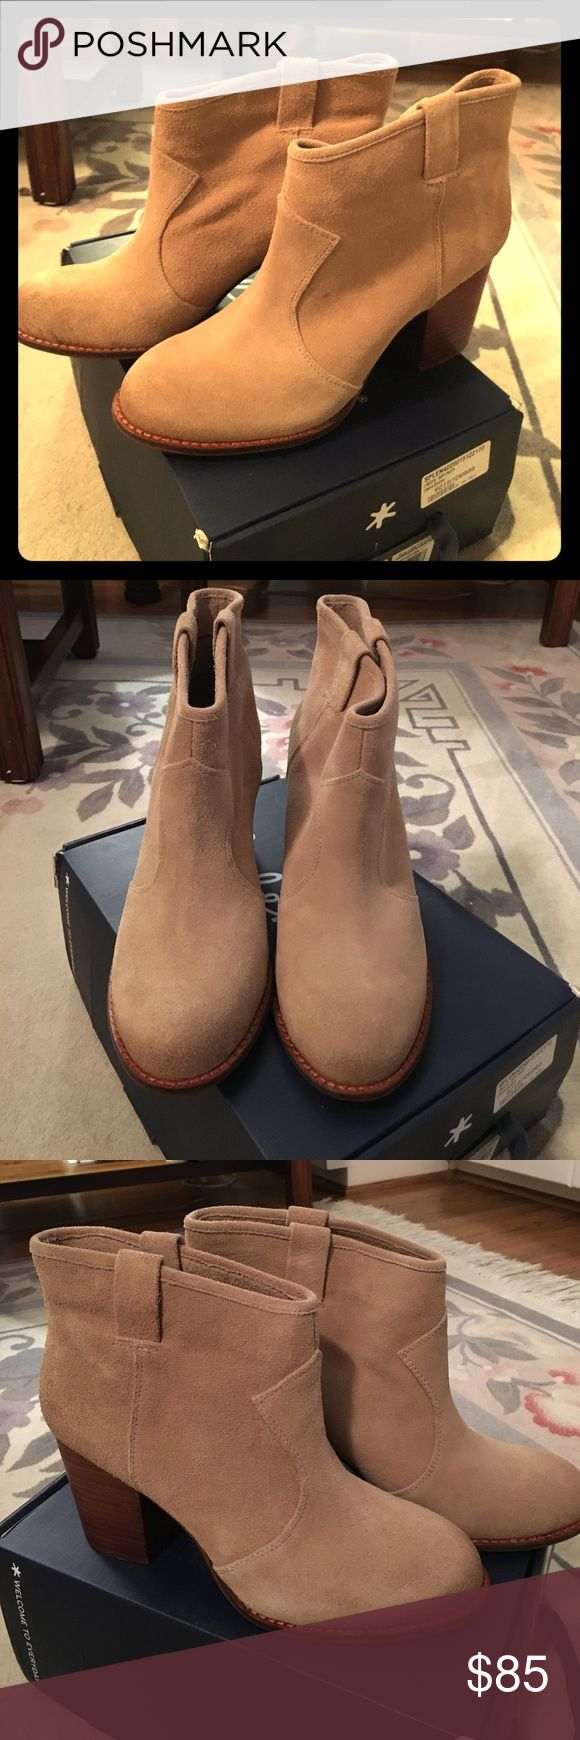 """Splendid Lakota Bootie Low chunky heeled bootie comfortable for all day wear in """"Nut"""" suede. They're perfect for work or brunch with the girls! These have never been worn (realized after the fact that I needed a half size larger)! Splendid Shoes Ankle Boots & Booties"""